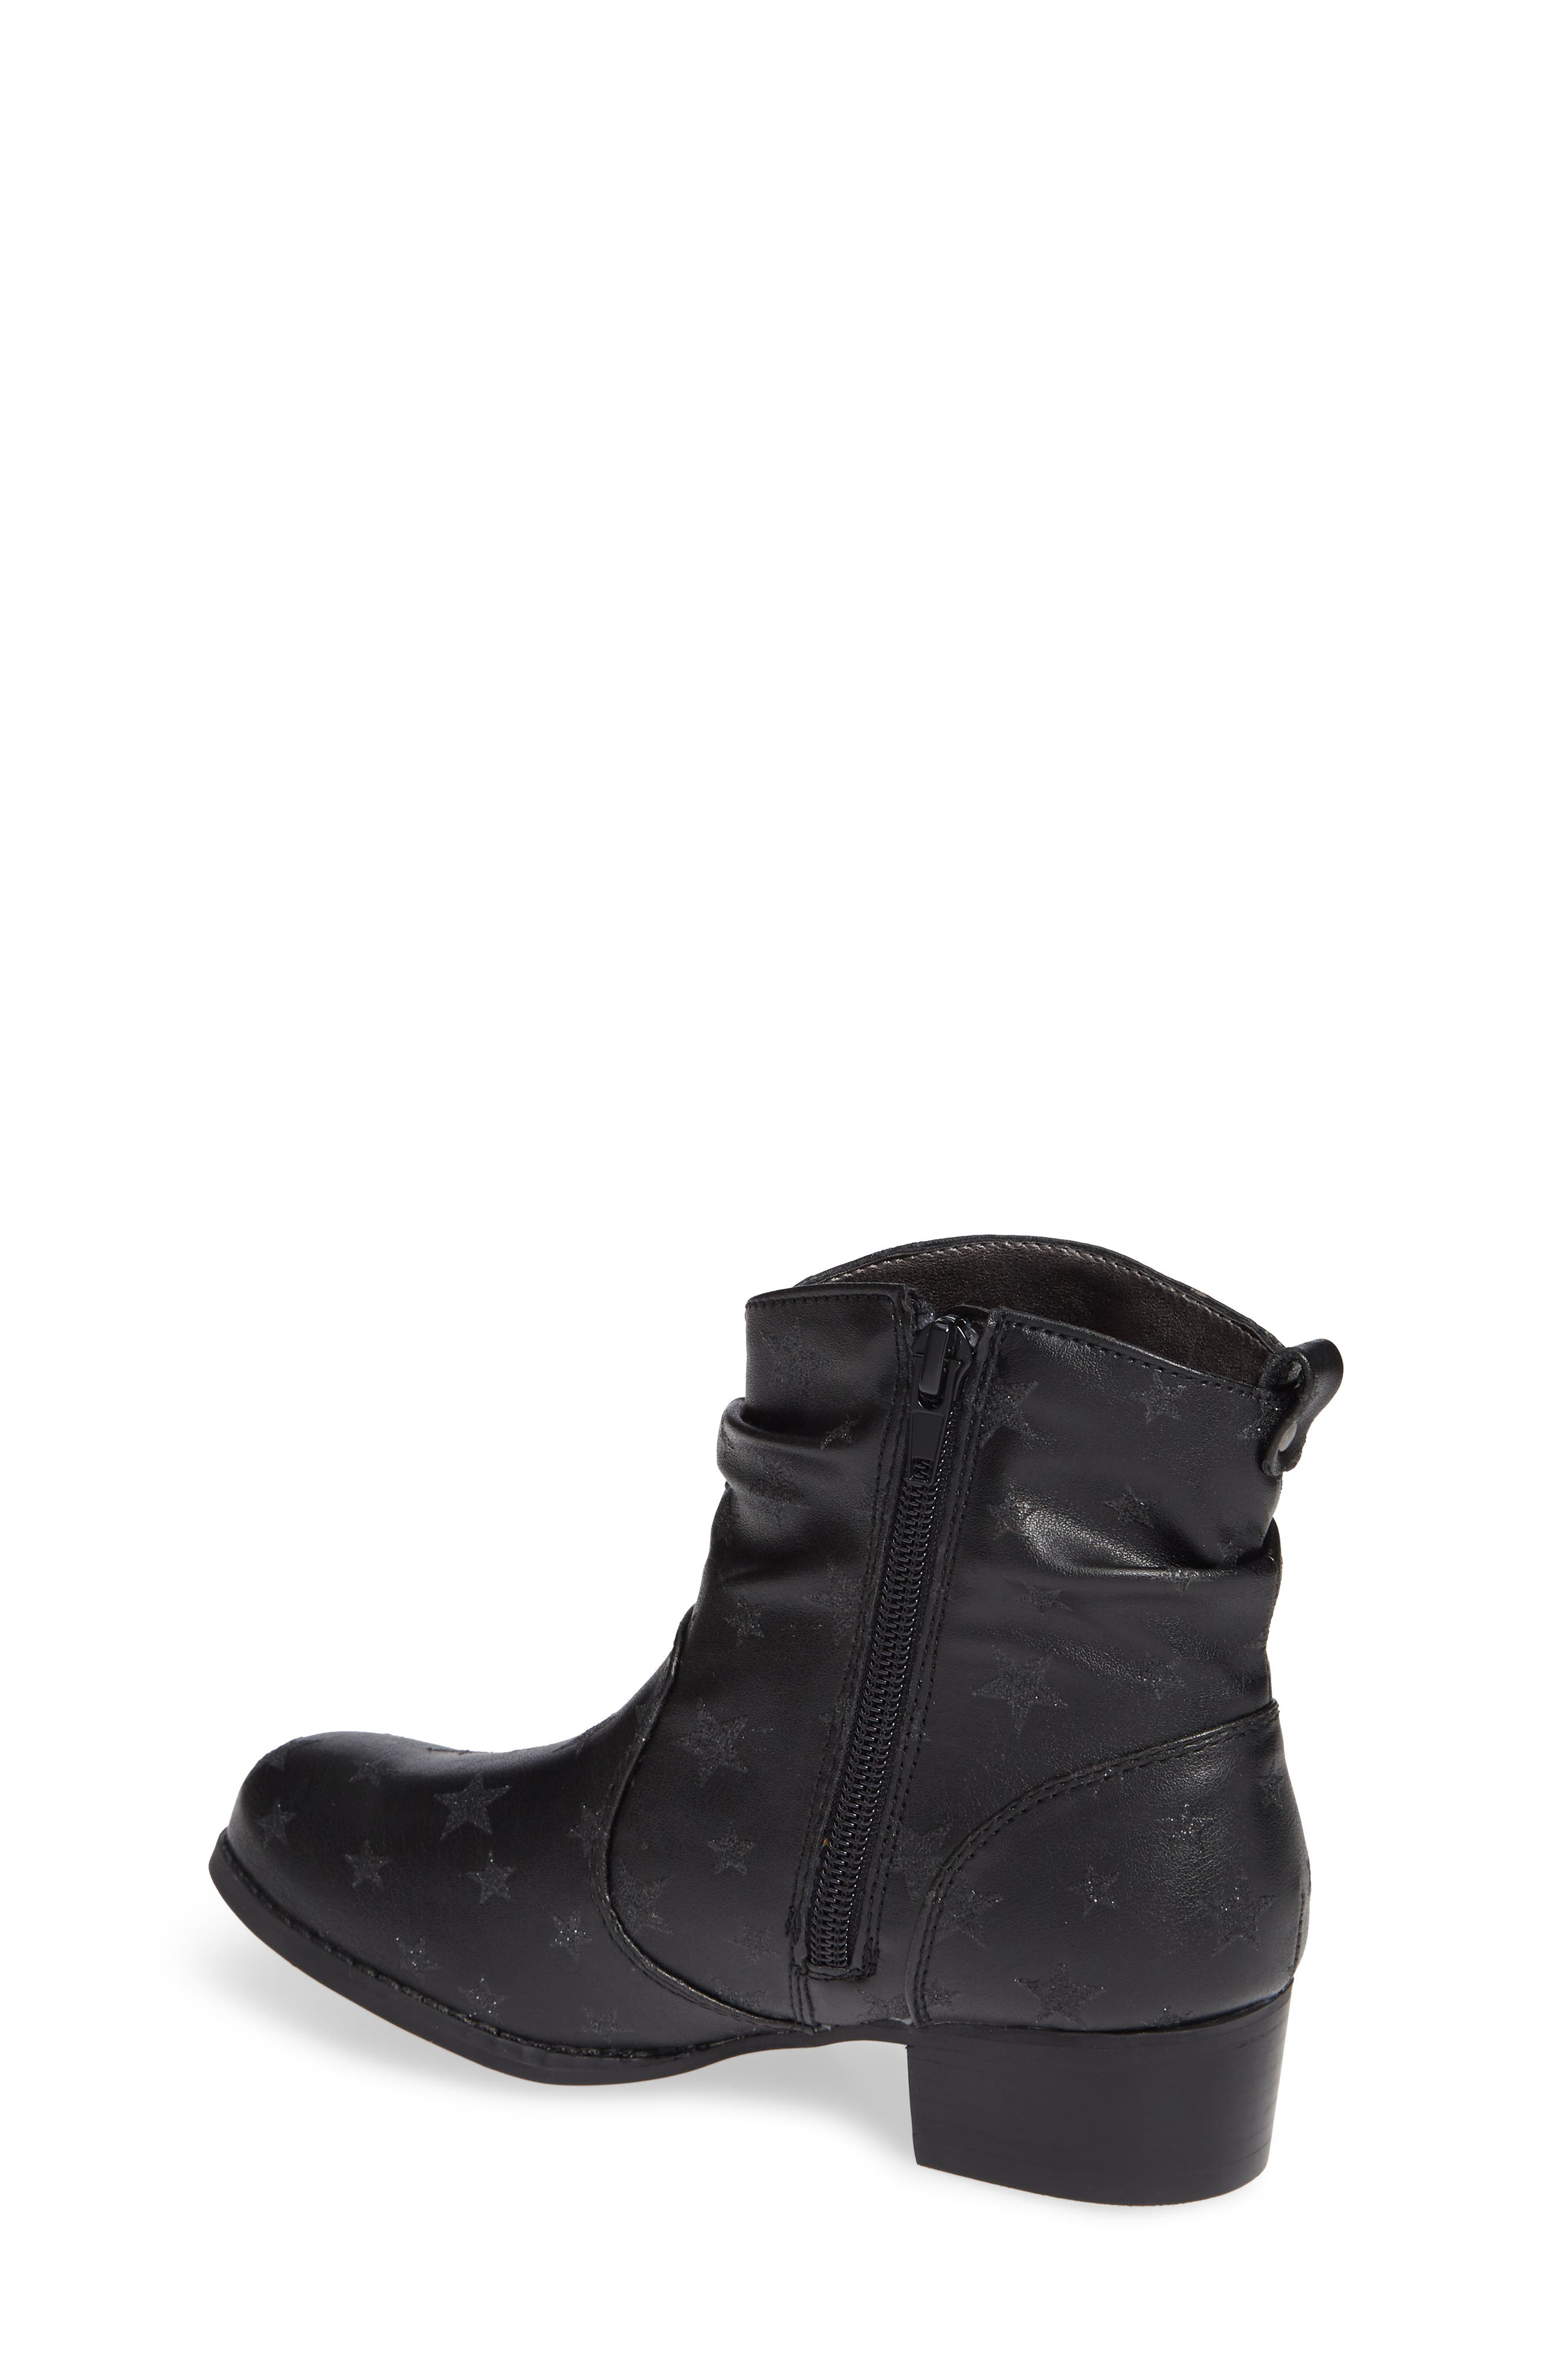 JCountry Slouch Bootie,                             Alternate thumbnail 2, color,                             BLACK